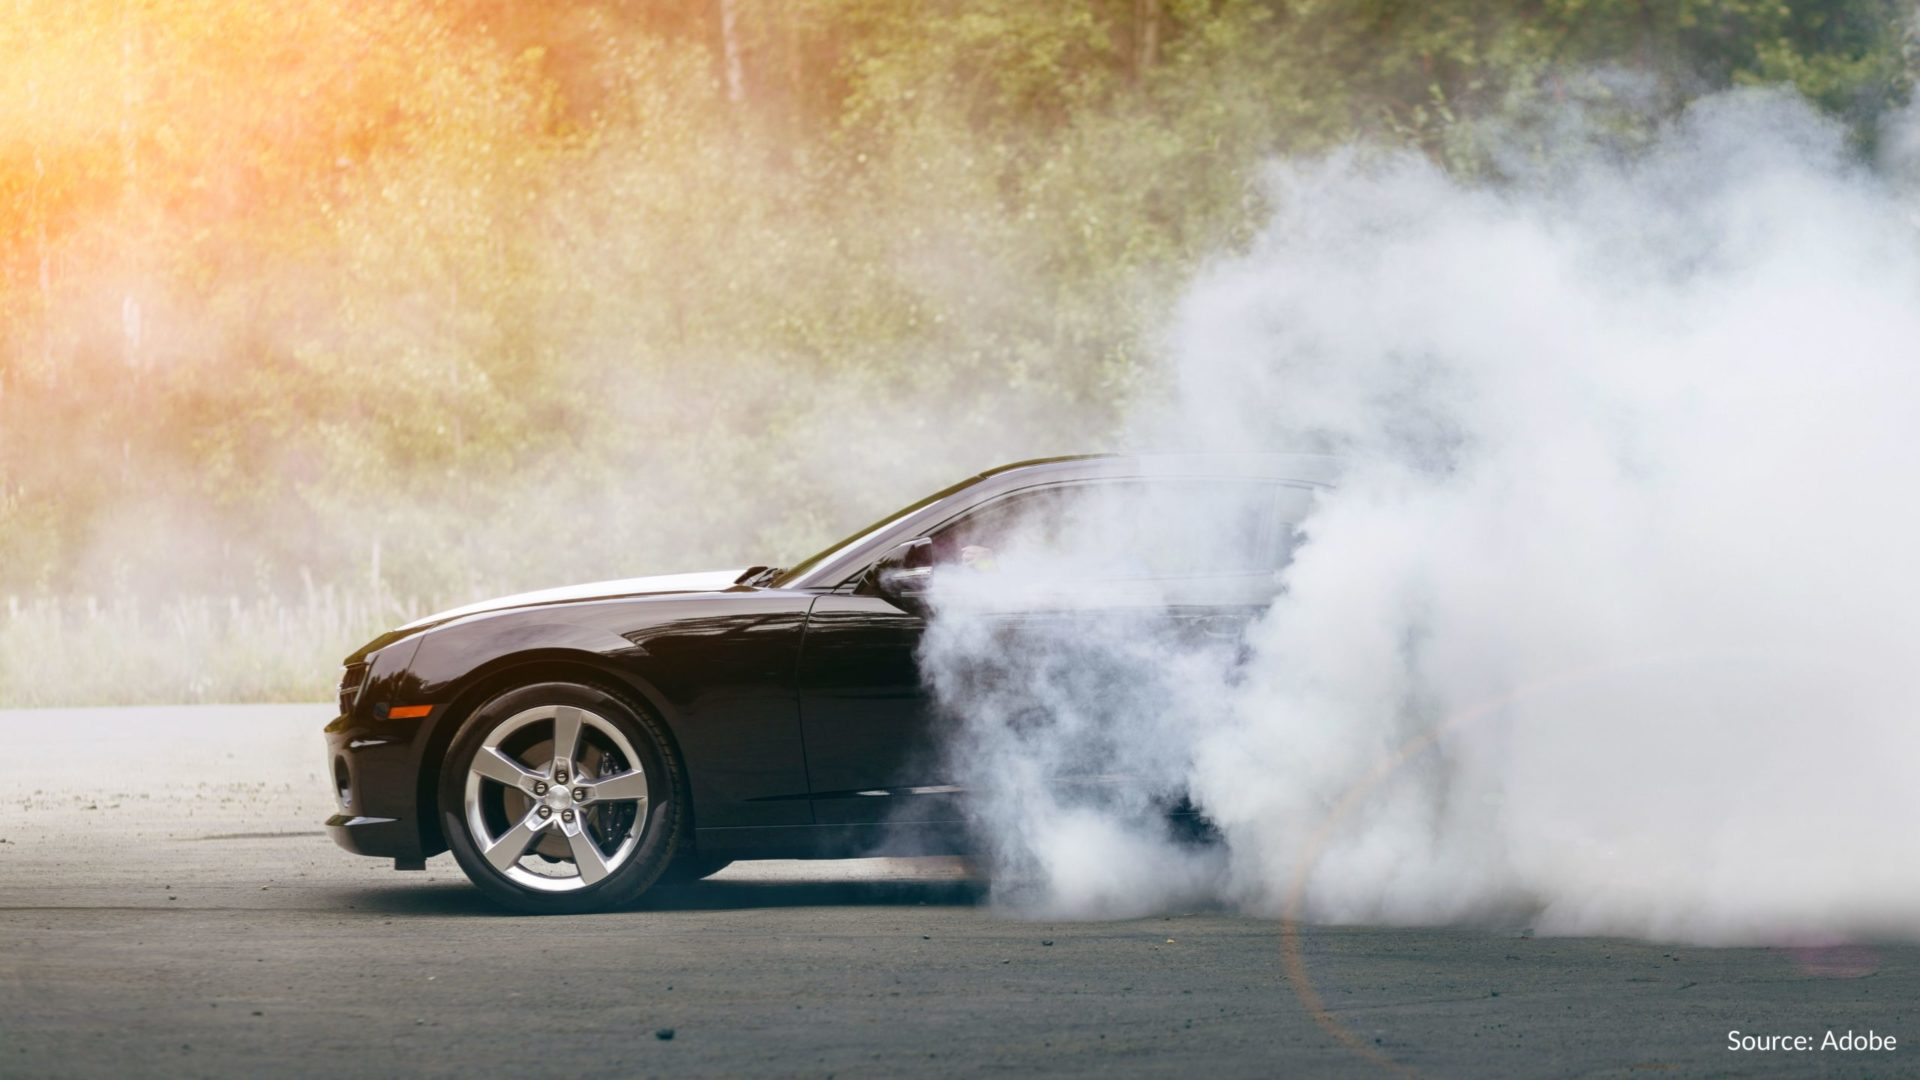 A car speeds, with white smoke clouding the back of the car.